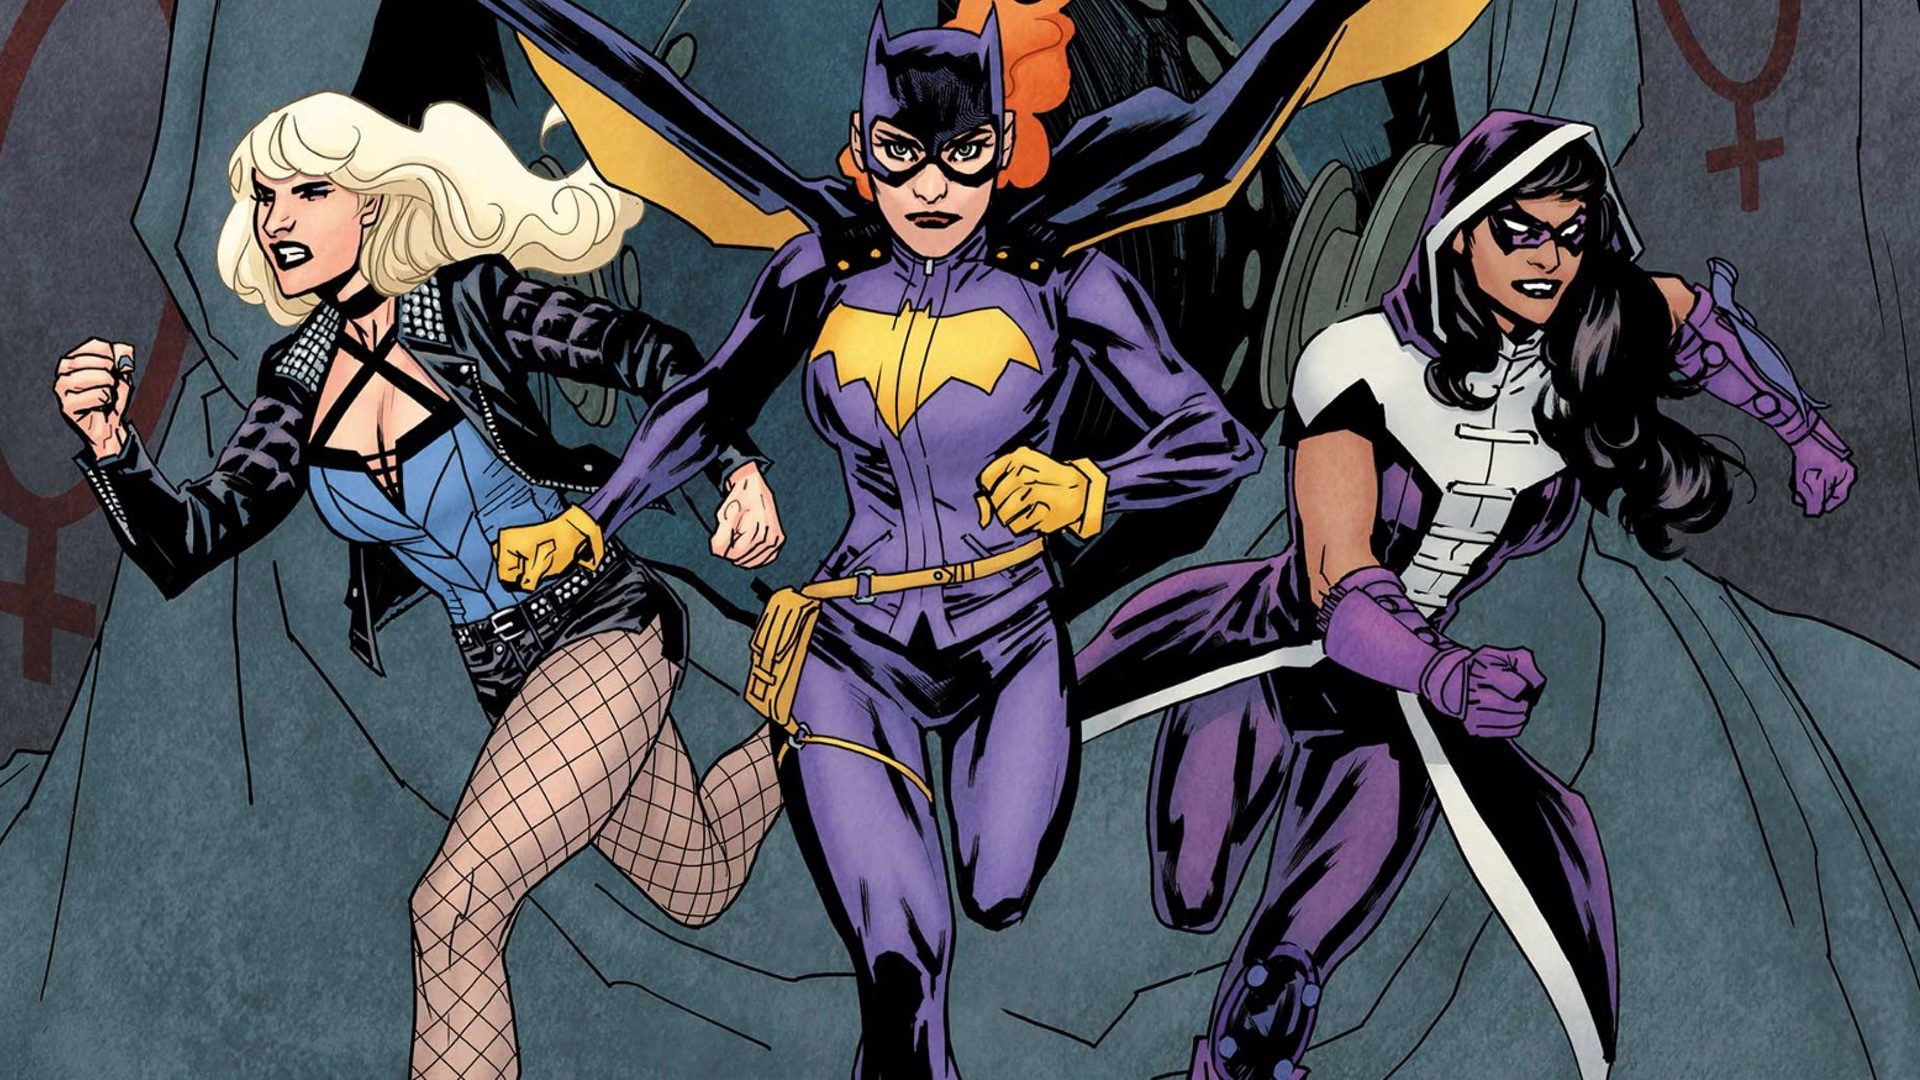 warner-bros-sets-a-release-date-for-the-dc-film-birds-of-prey-social.jpg